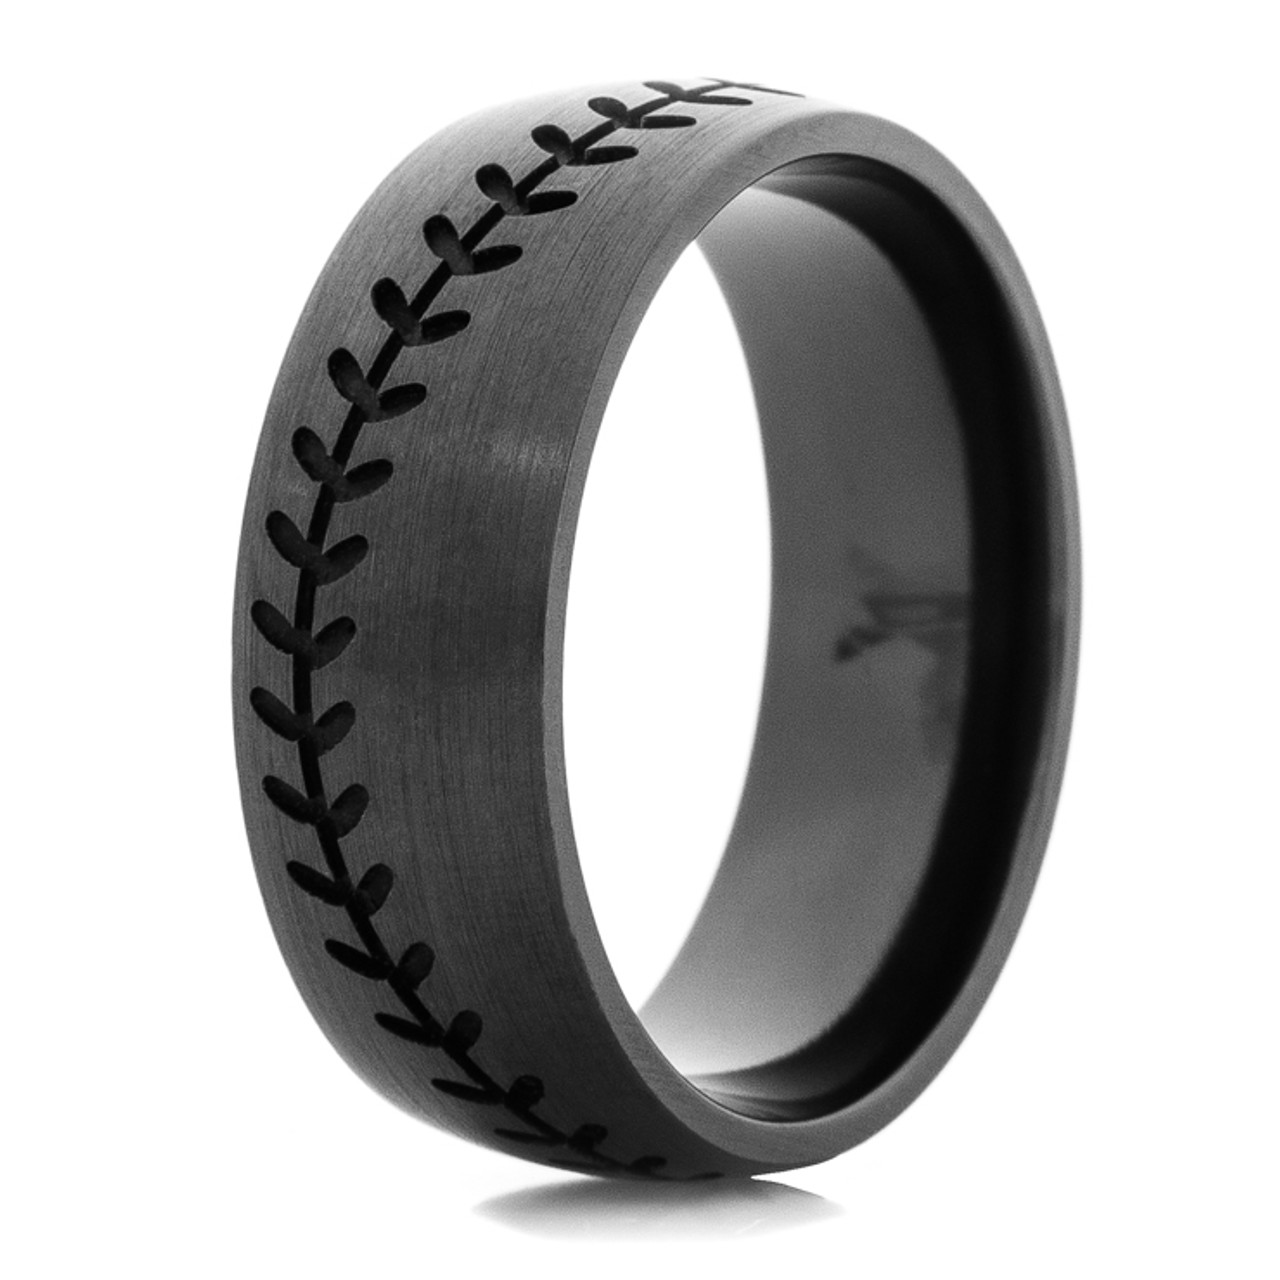 Mens Wedding Band.Men S Blacked Out Baseball Wedding Band